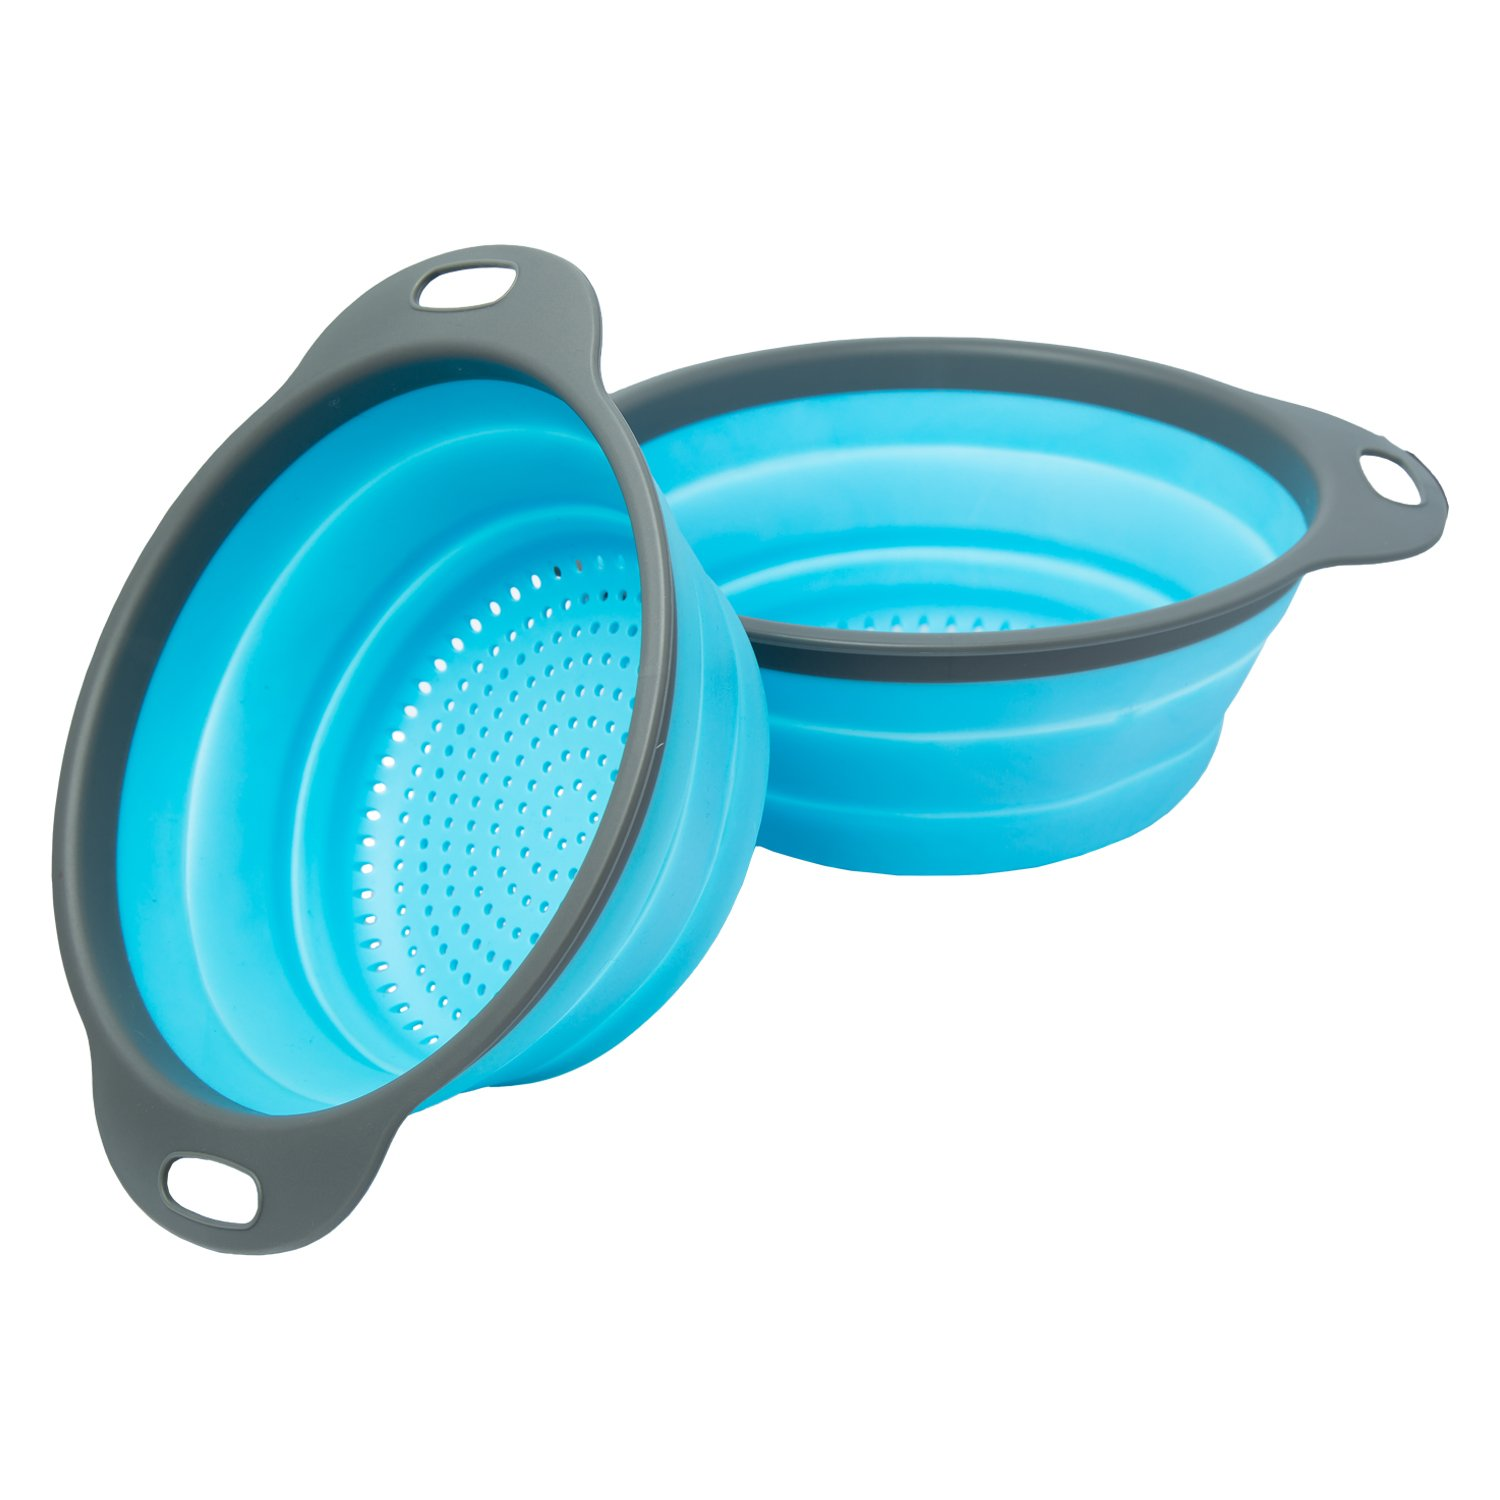 Colander Set - 2 Collapsible Colanders (Strainers) Set By Comfify - Includes 2 Folding Strainers Sizes 8'' - 2 Quart and 9.5'' - 3 Quart Blue and Grey